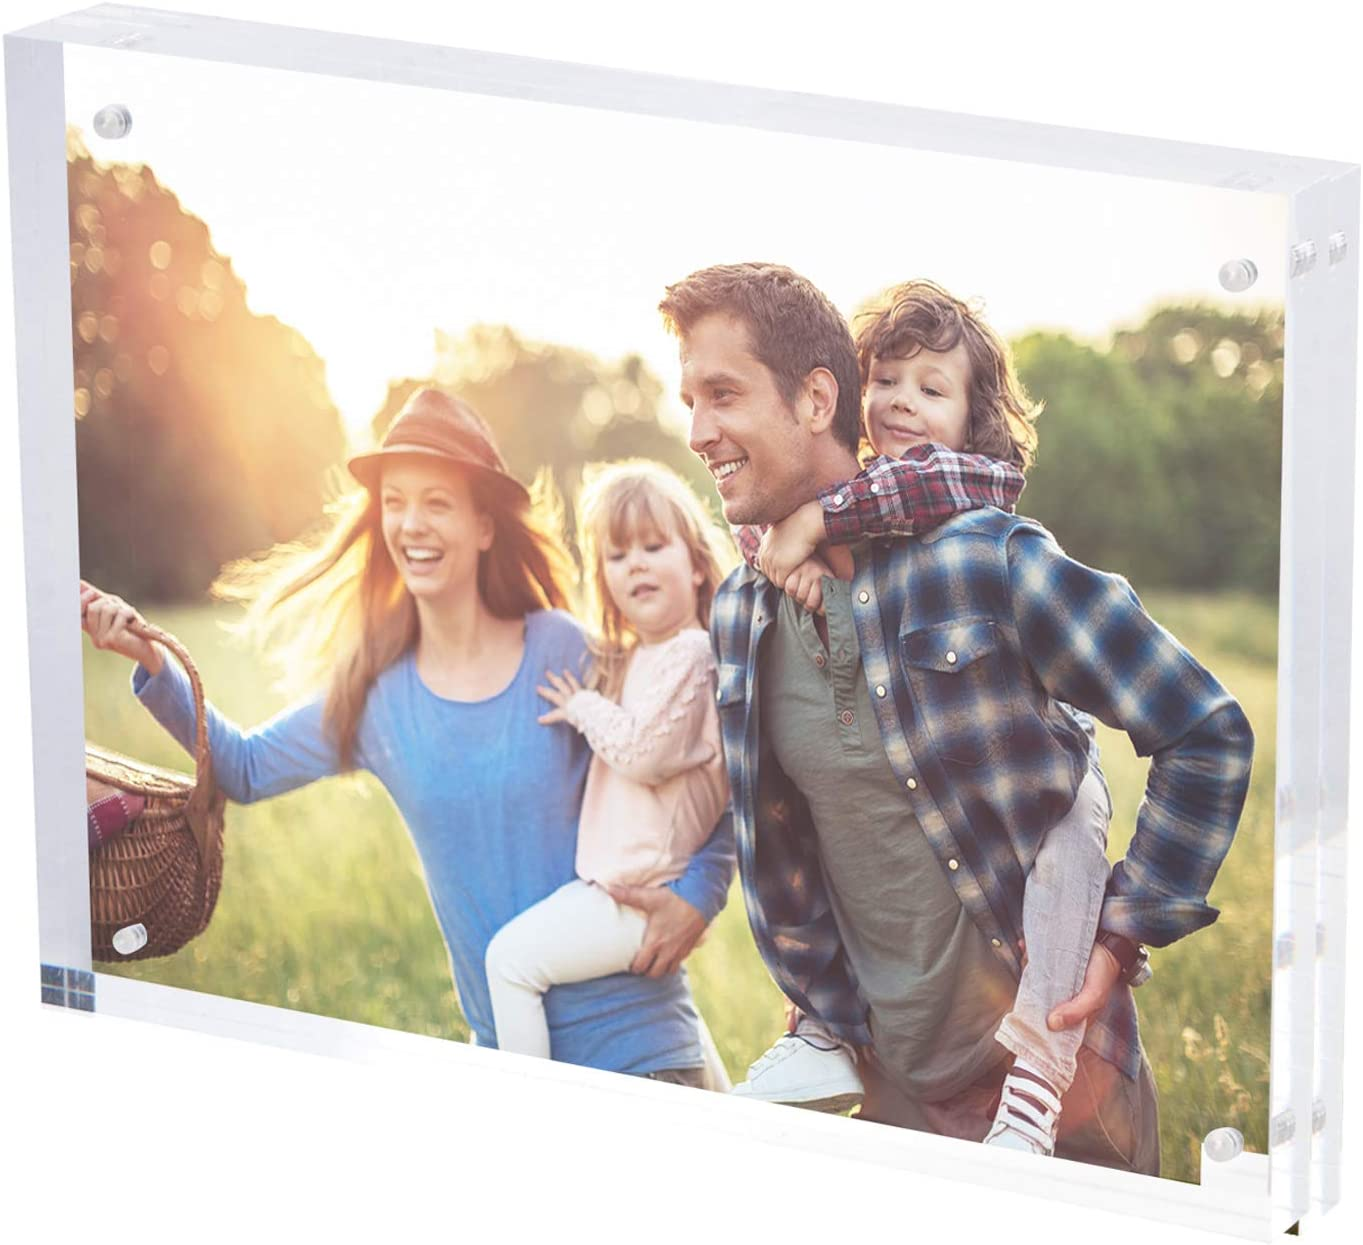 SimbaLux Magnetic Acrylic Picture Photo Frame 8x10 inches (1 Pack), Clear Glass Like, Double Sided Frameless Desktop Floating Display, Free Standing, Easy to Change, 2.4cm Thick, 20% Thicker than Most